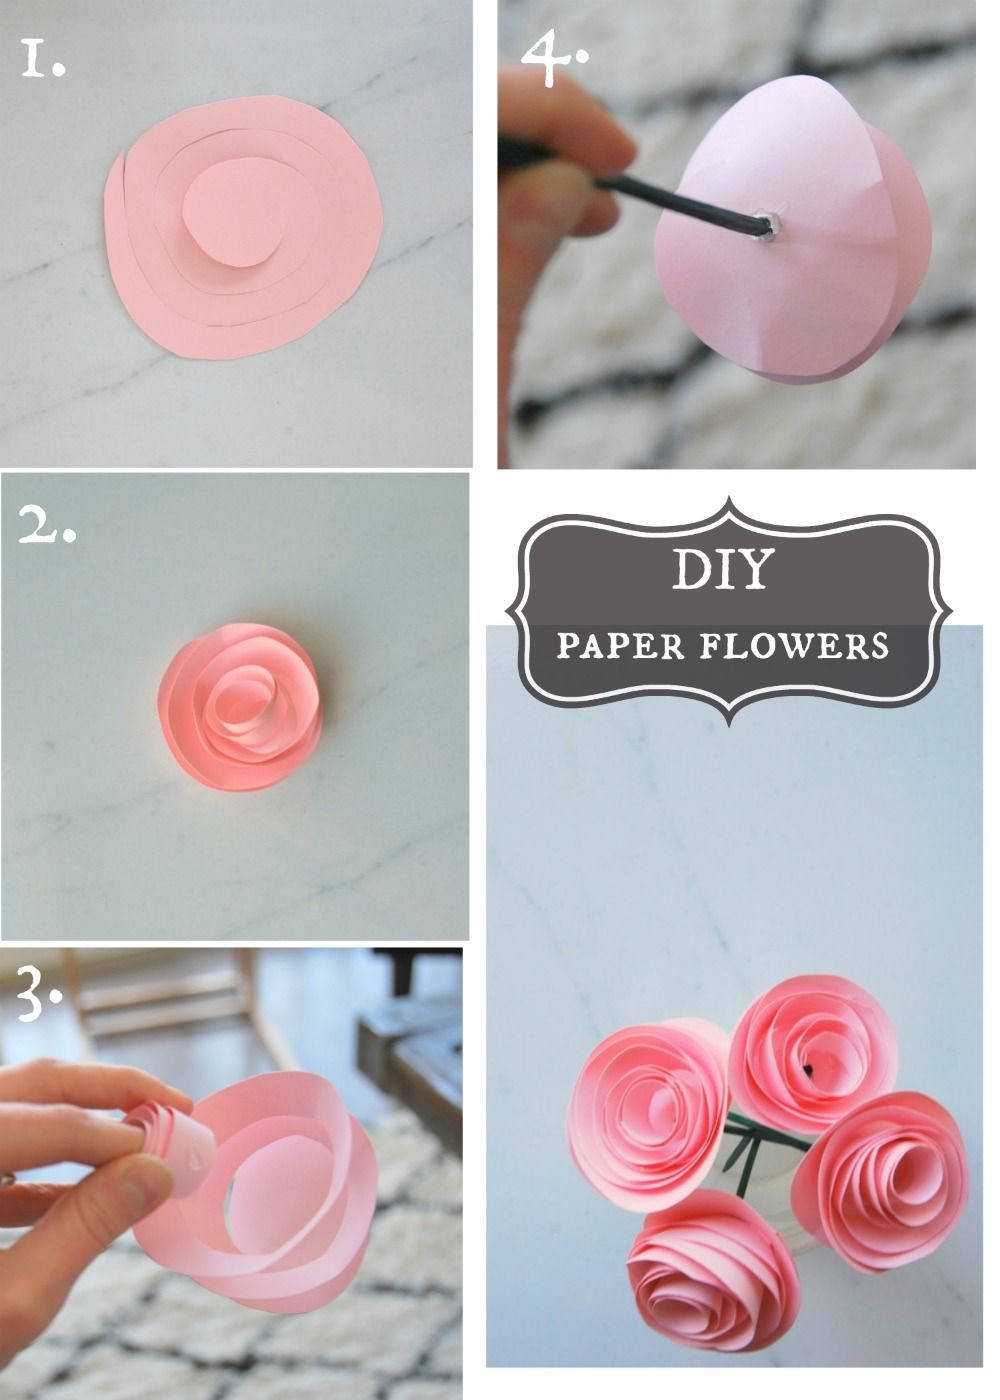 The easiest diy paper flower tutorial diy tutorial tutorials and diy tutorial to make pretty paper flowers via the sweetest digs mightylinksfo Choice Image